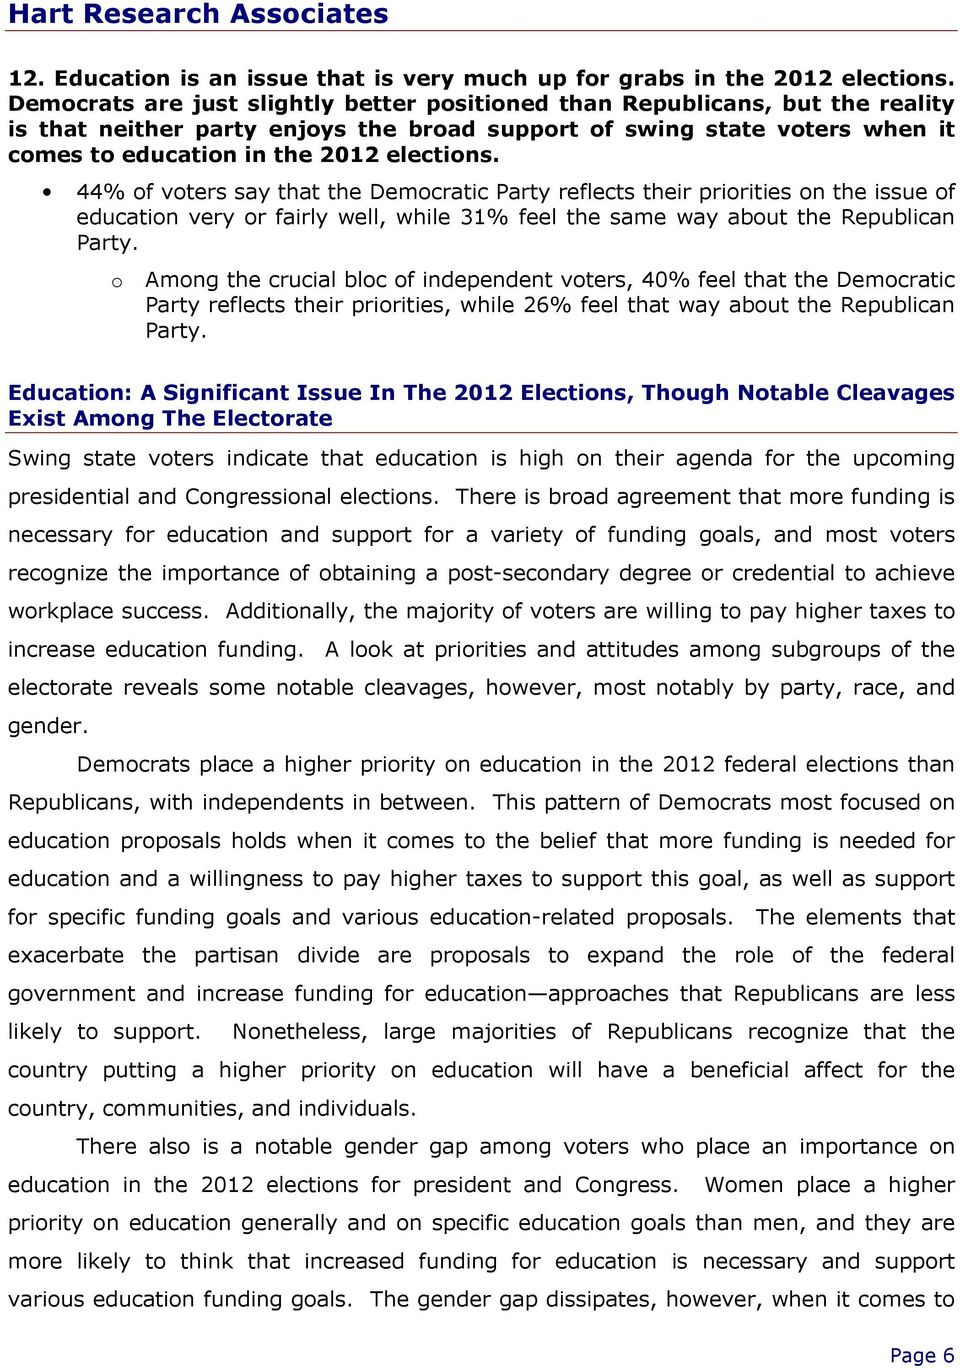 44% of voters say that the Democratic Party reflects their priorities on the issue of education very or fairly well, while 31% feel the same way about the Republican Party.